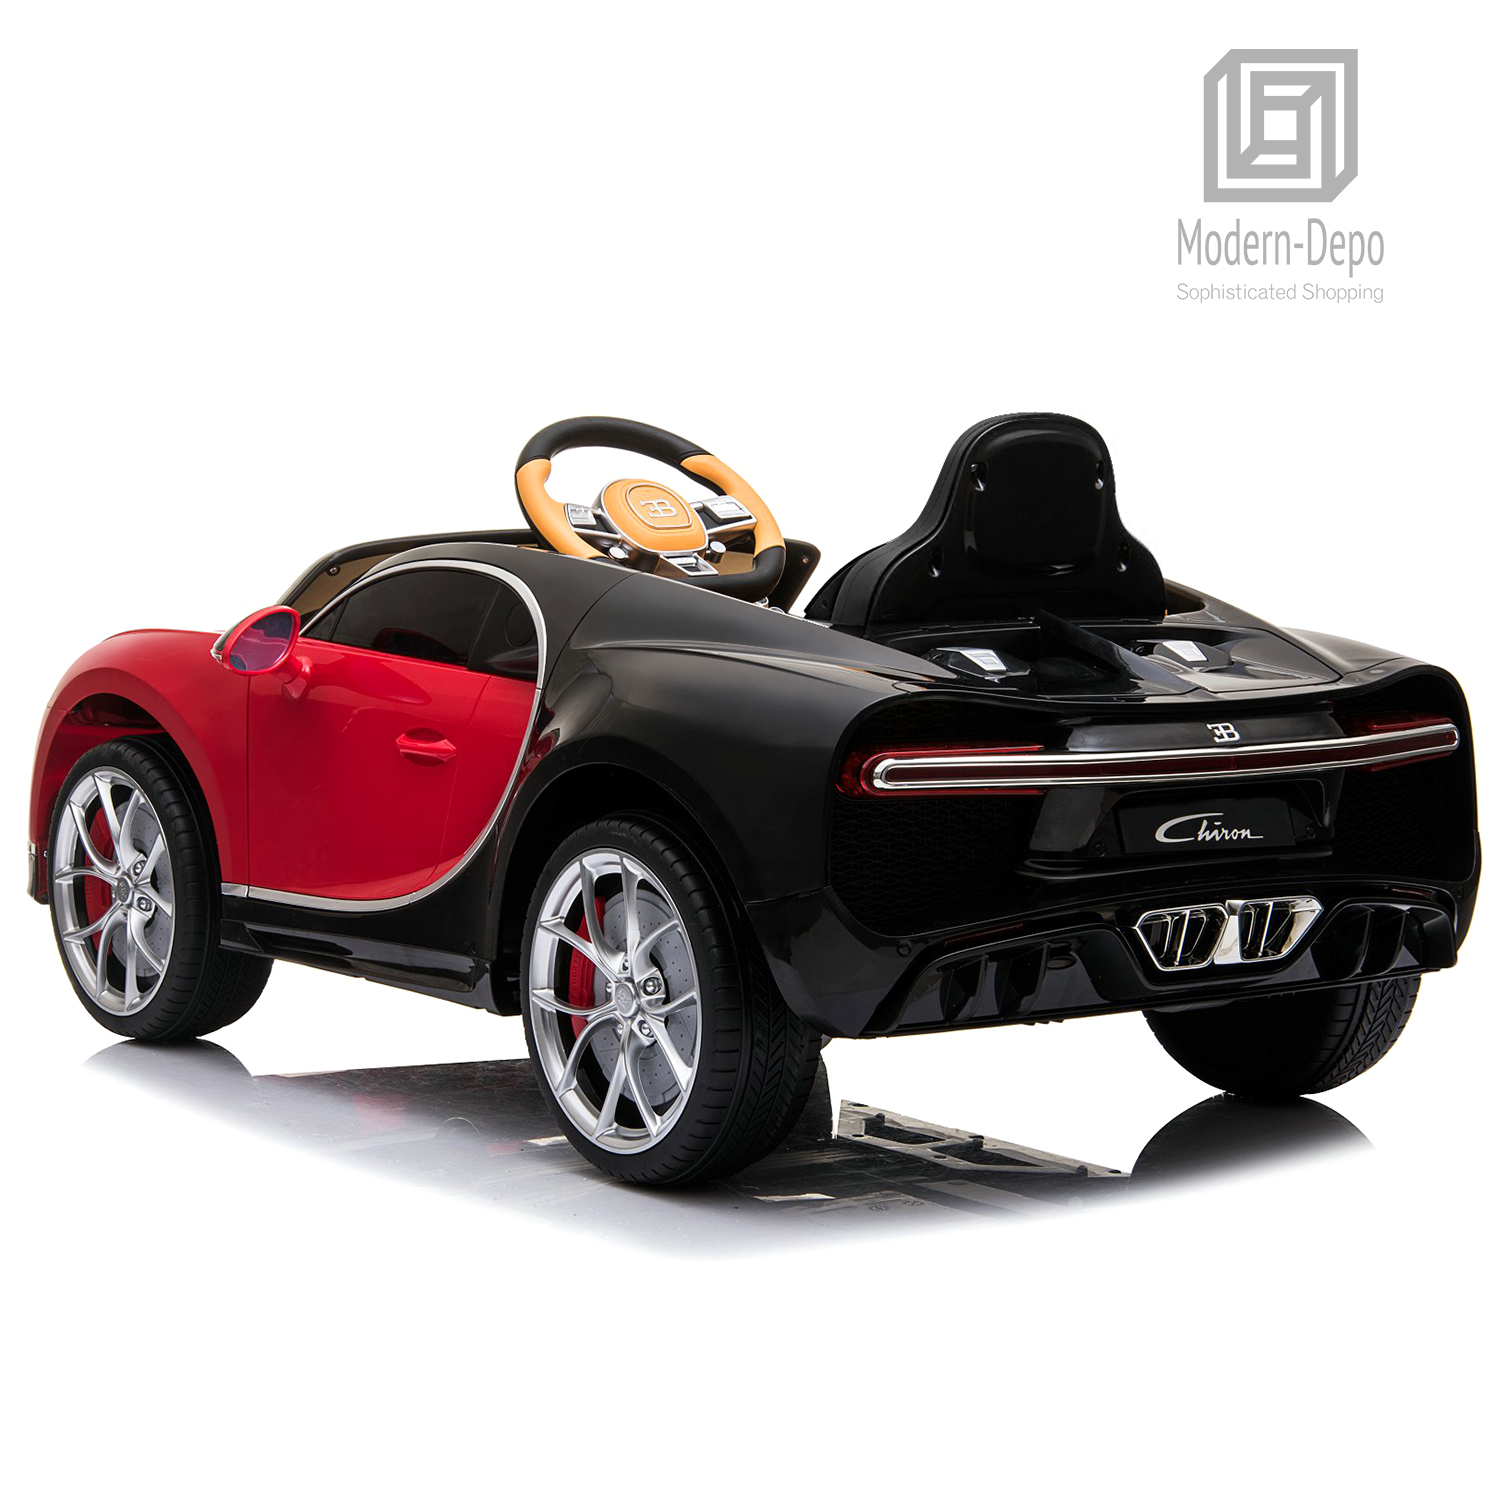 Bugatti-Chiron-12V-Kids-Ride-On-Car-with-Remote-Control-High-Speed-Motor miniature 32